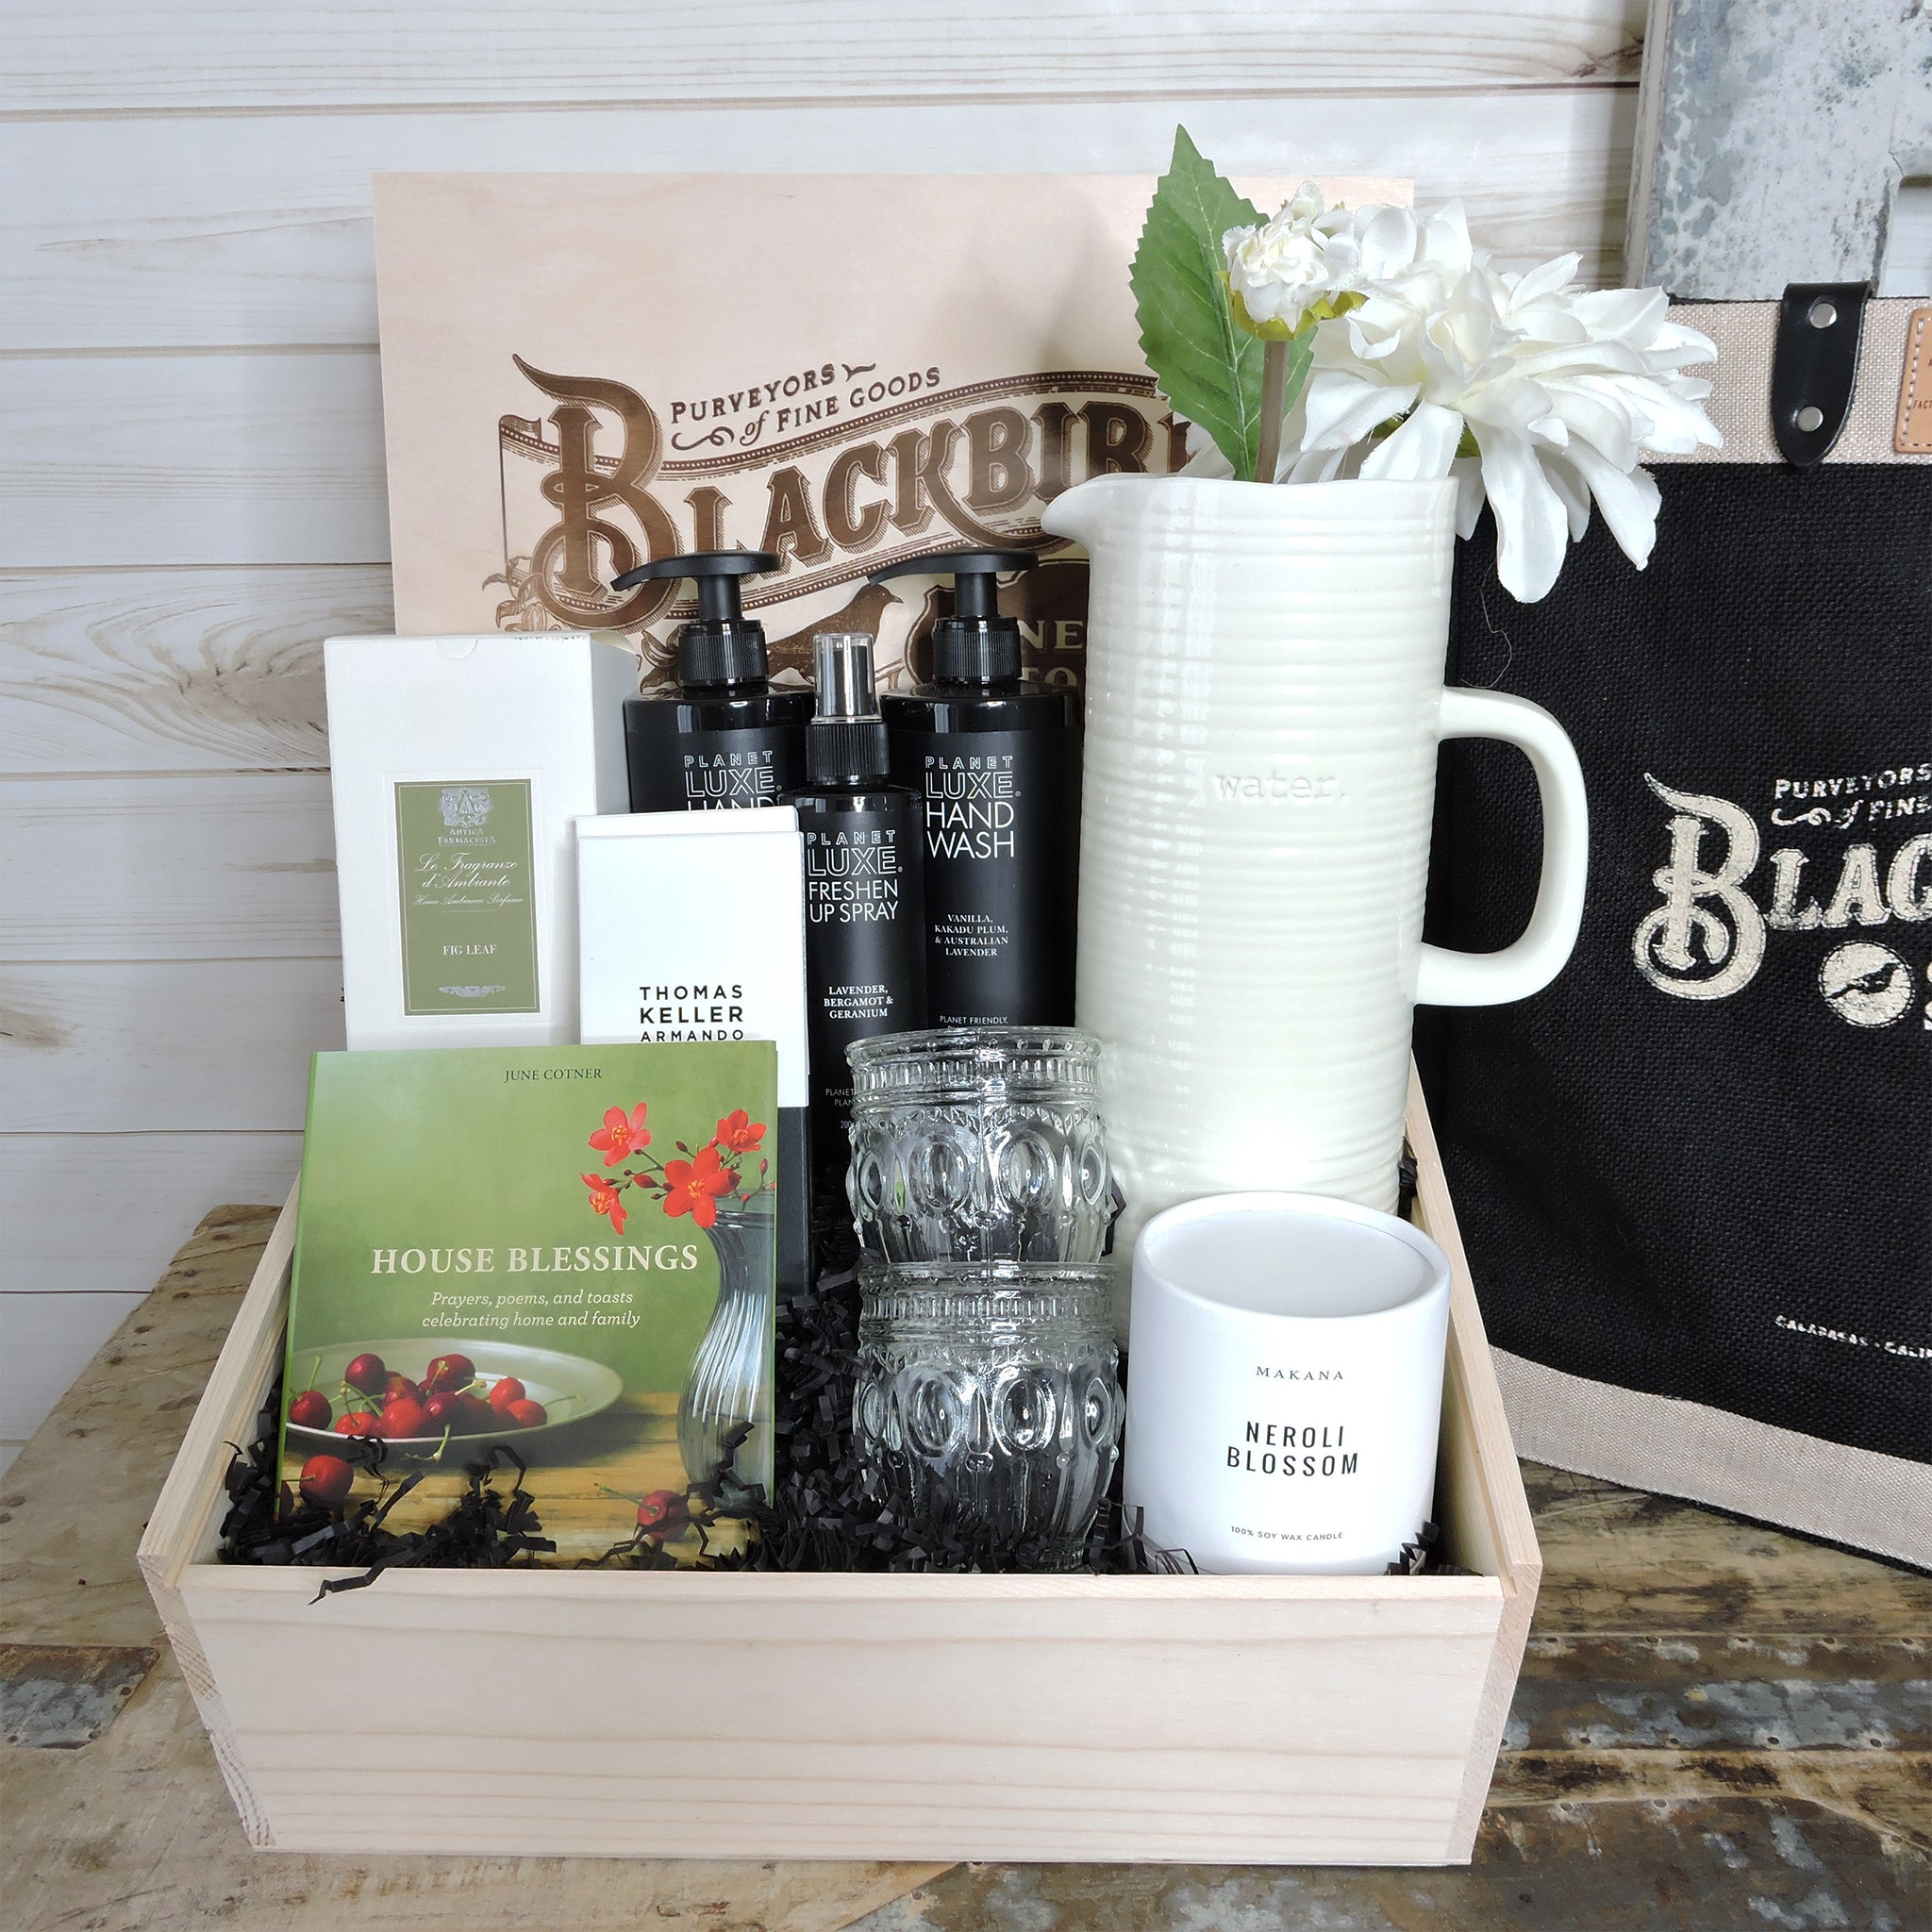 House Blessings Box - Blackbird General Store